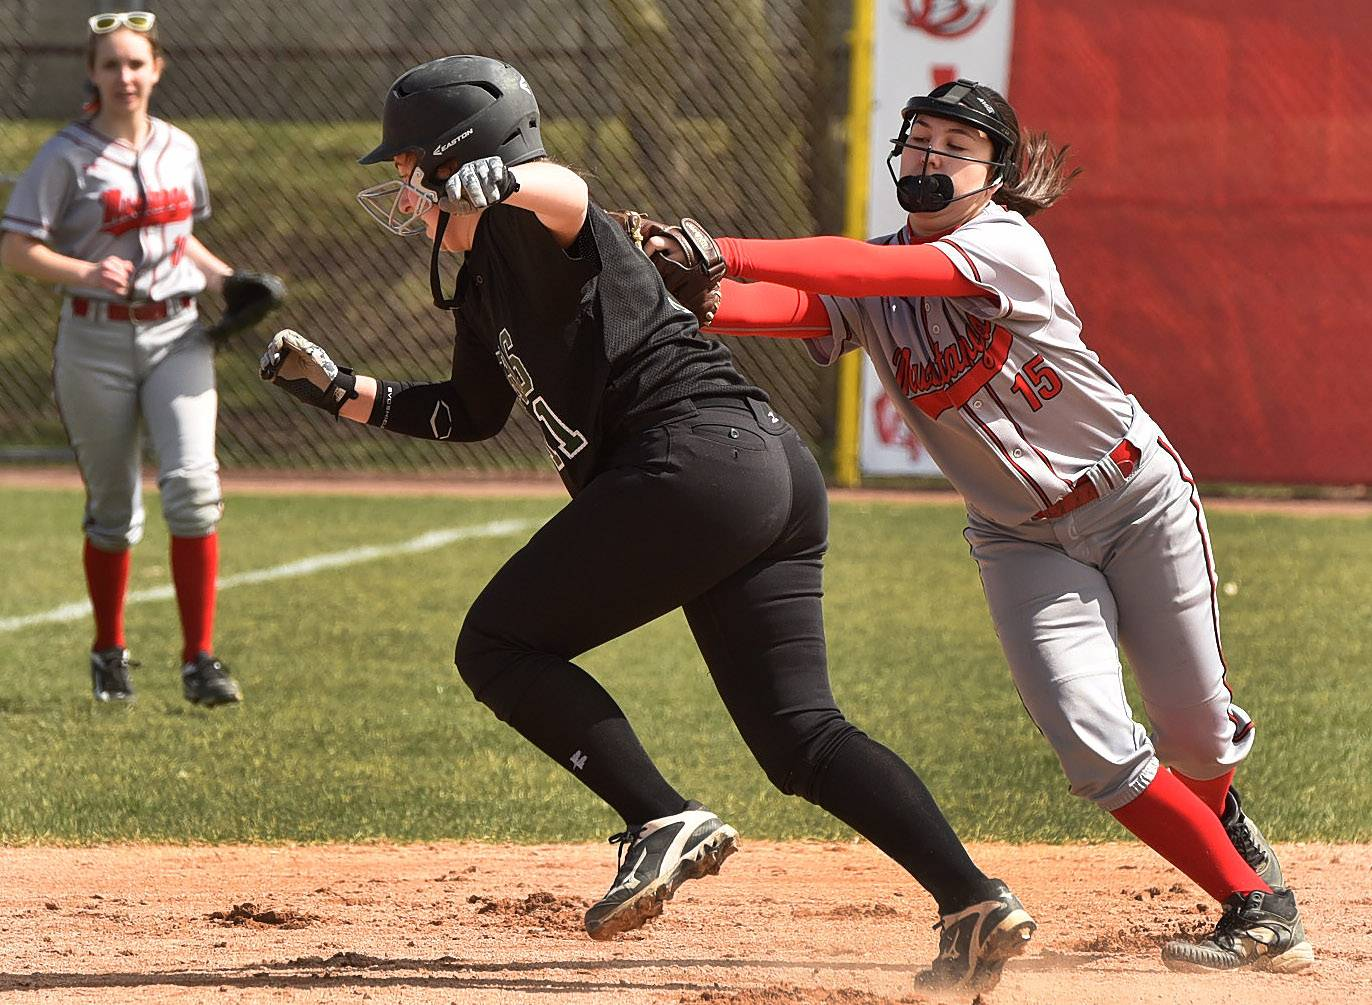 Mundelein's Kira Buckner tags out Elk Grove's Jamie Klicka in a rundown during softball at Barrington's Fields of Dreams.